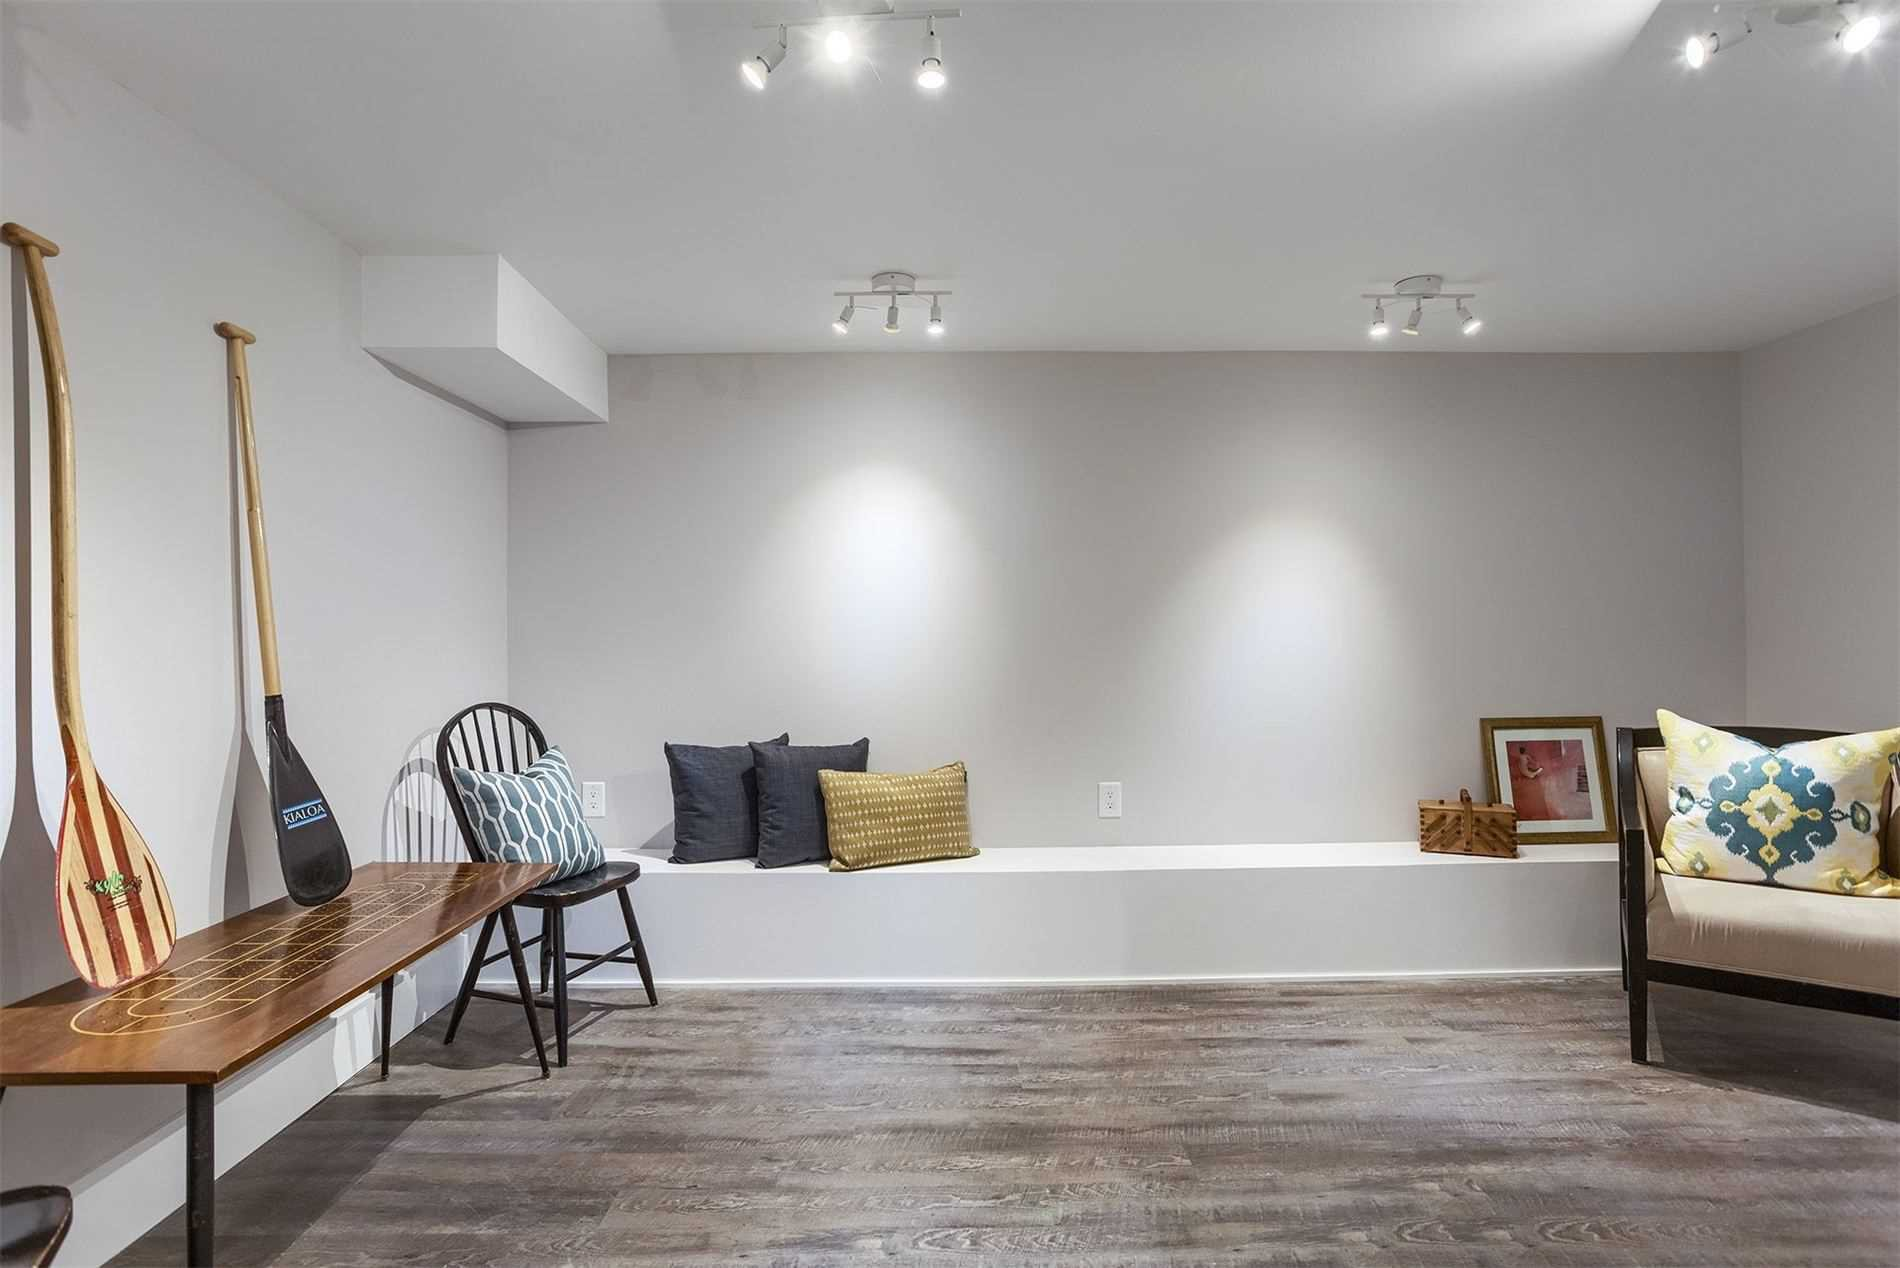 Photo 5: Photos: 53 Pearson Avenue in Toronto: Roncesvalles House (Other) for lease (Toronto W01)  : MLS®# W4816830